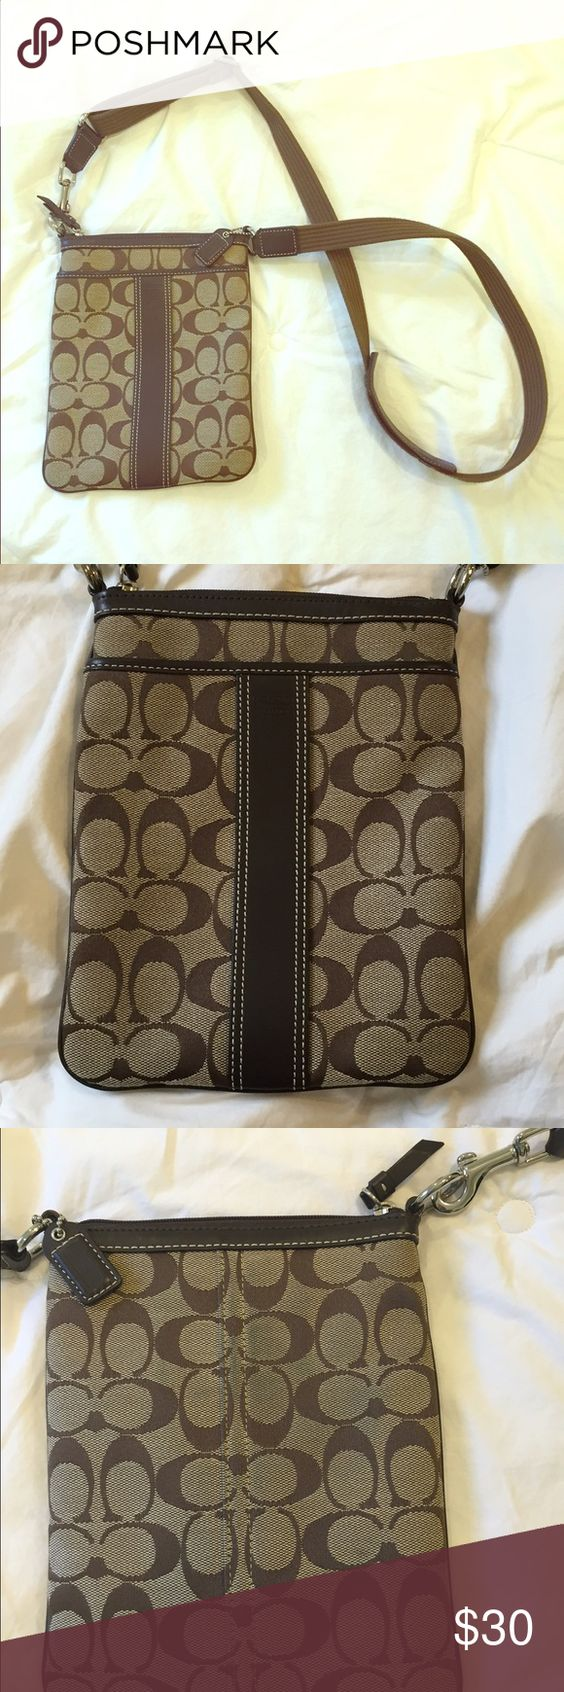 """Authentic Signature Coach Crossbody Purse Authentic Signature Coach Crossbody Bag. Measures approximately 8.5""""x6.5"""" with adjustable strap and zip closure. Functioning front pocket. Has some ink transfer from dark denim on the back, which can be seen in the last photo. Coach Bags Crossbody Bags"""